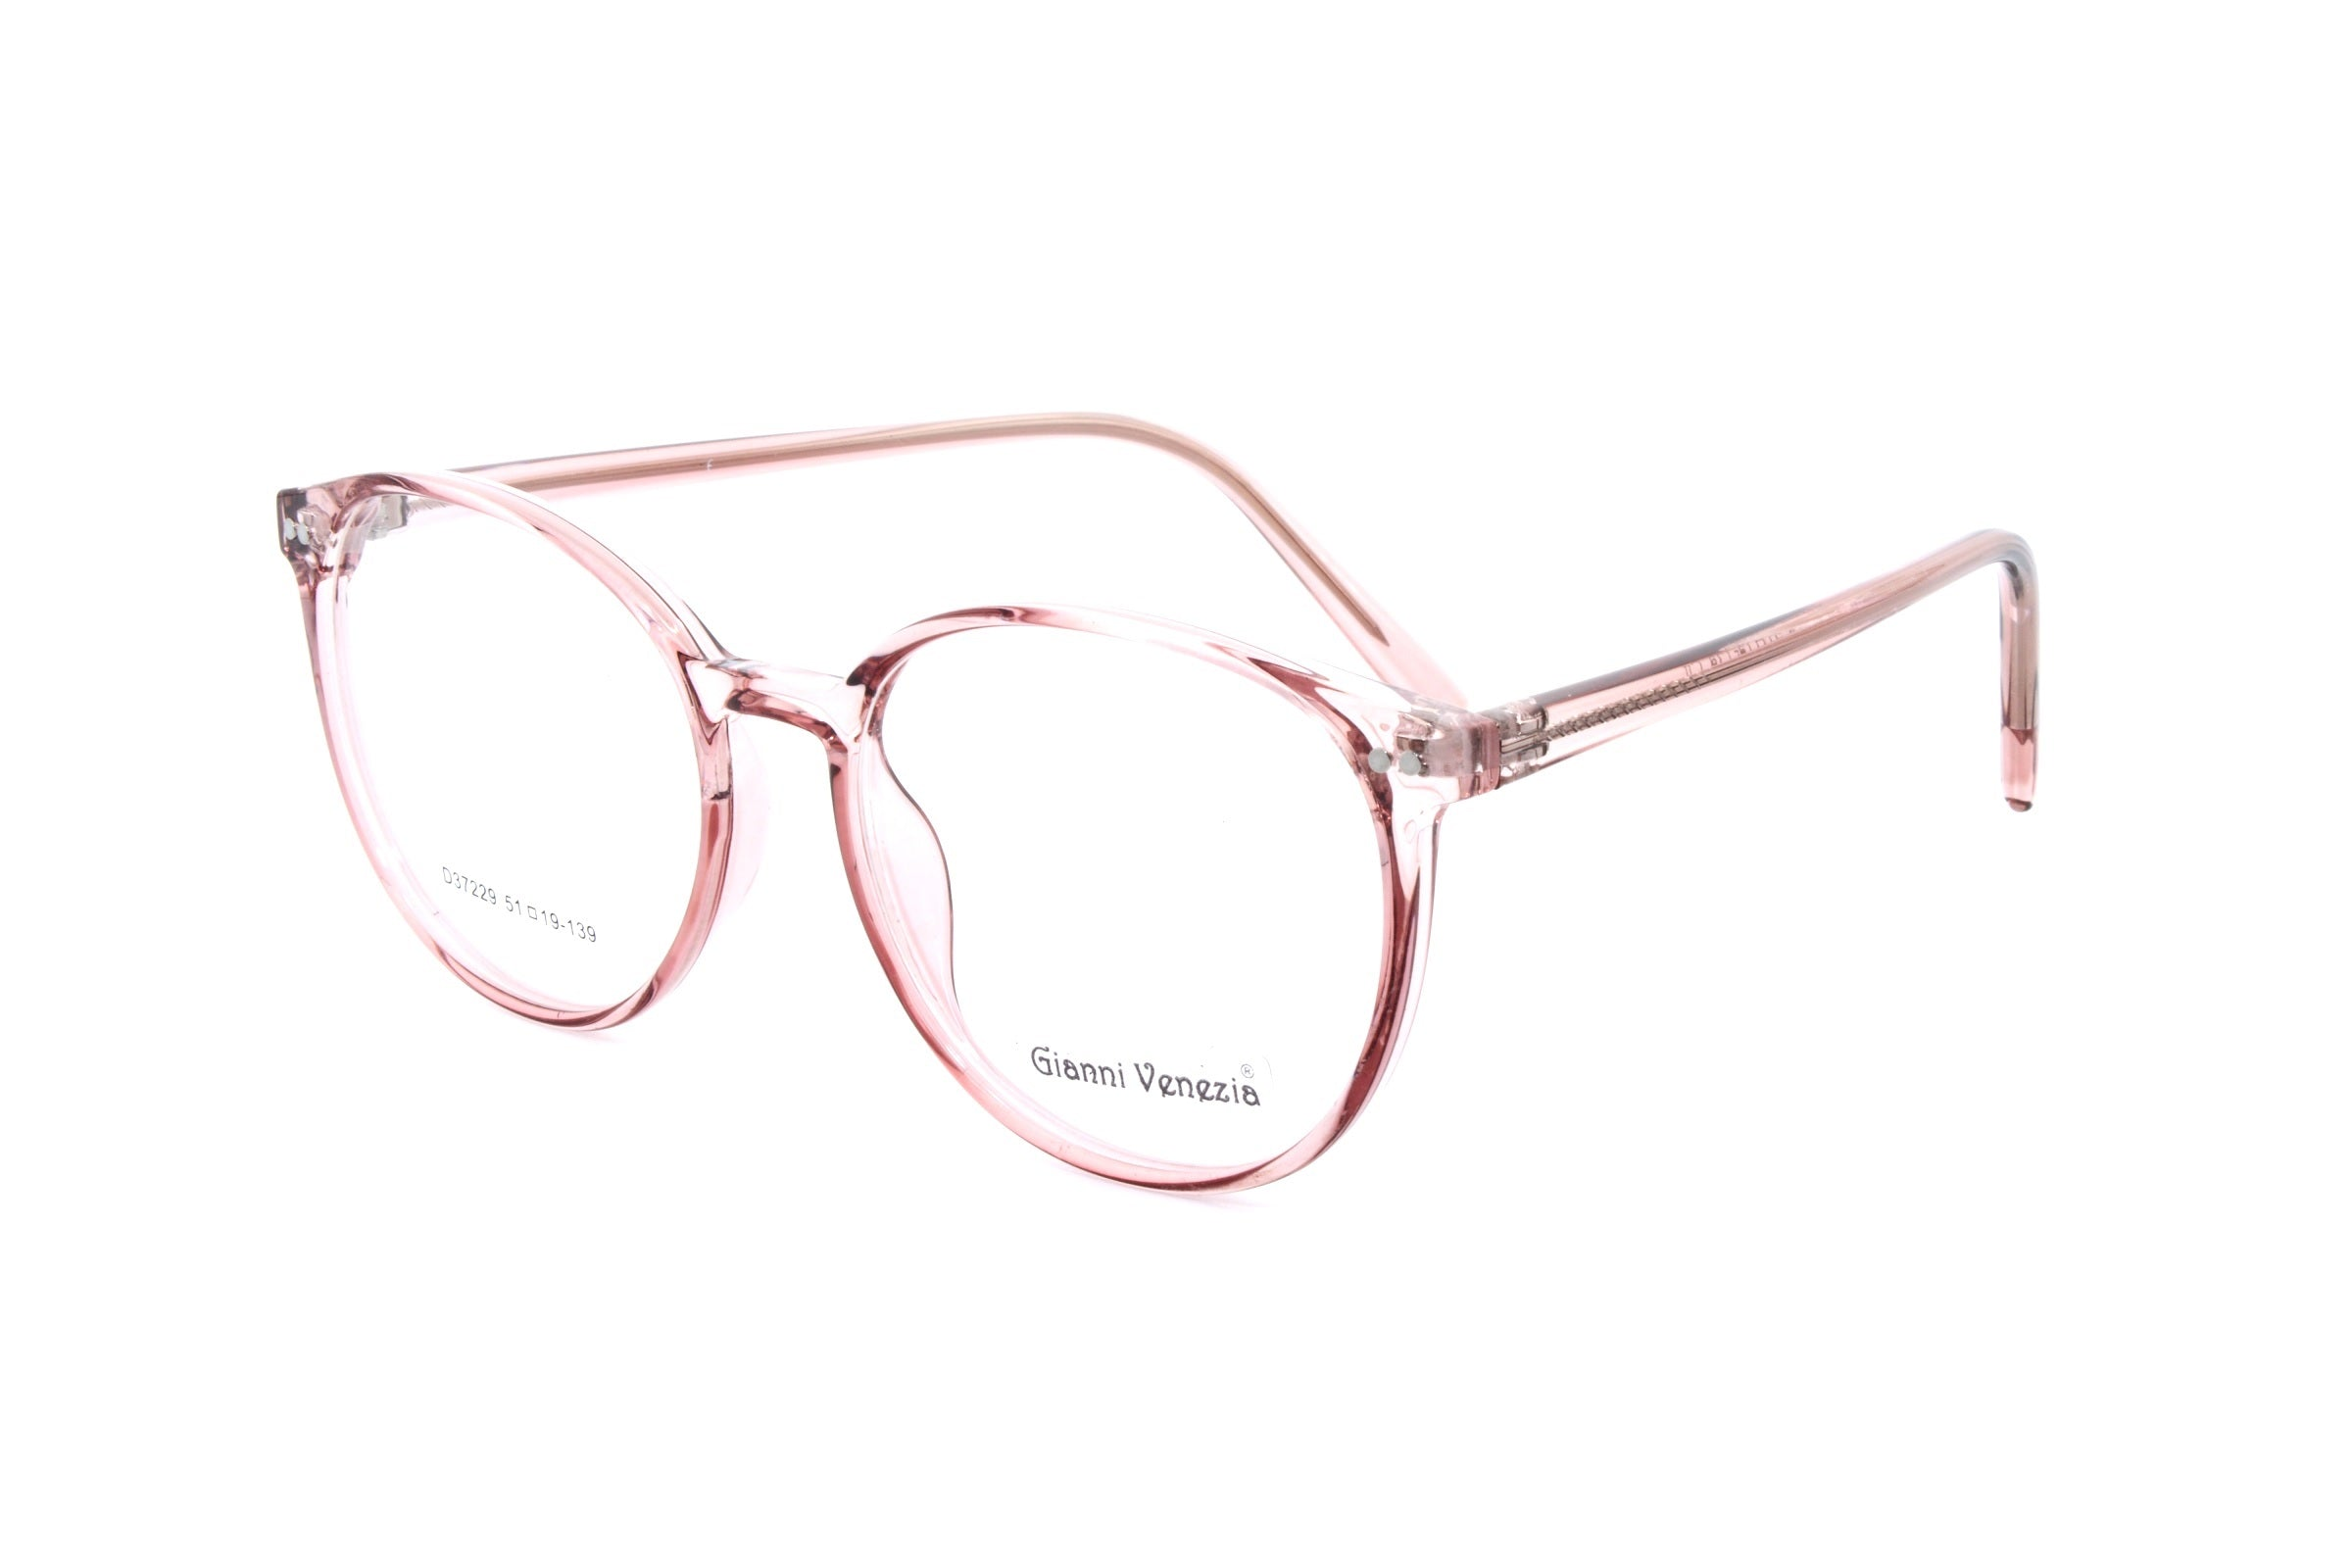 Gianni Vennezia eyewear 37229, C4 - Optics Trading